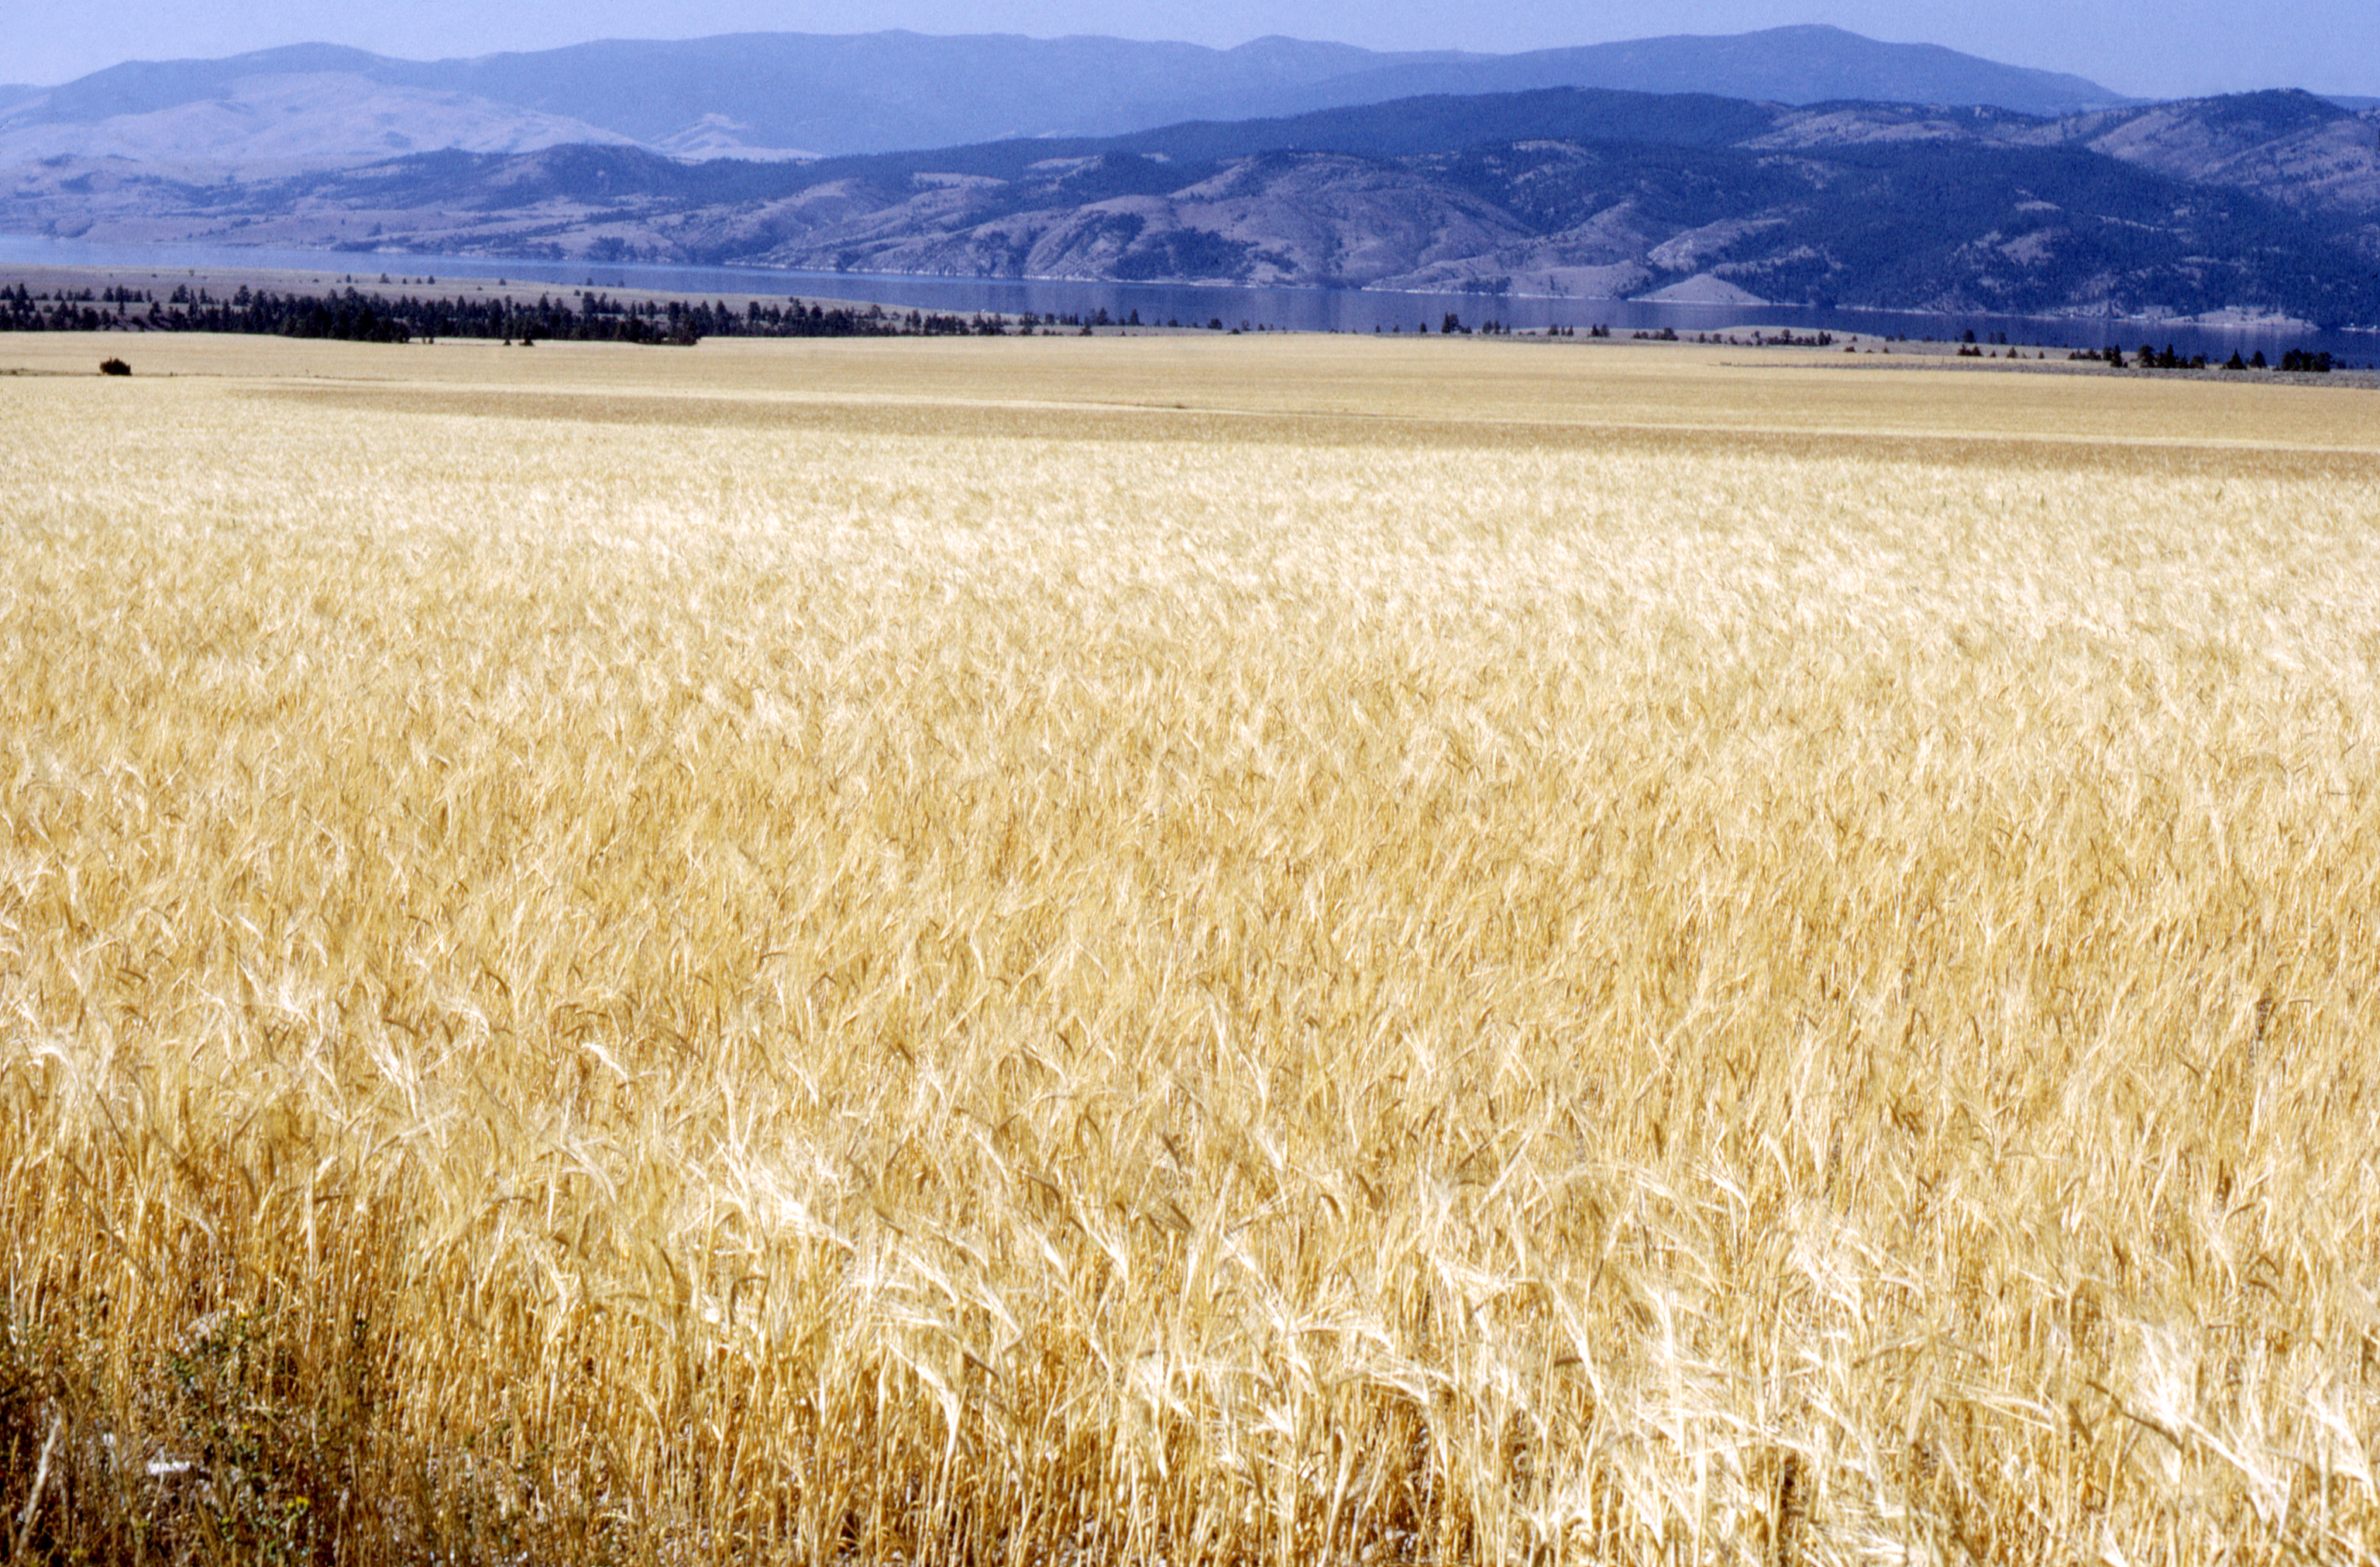 A photograph of a wheat field. A mountain range is in the distance.